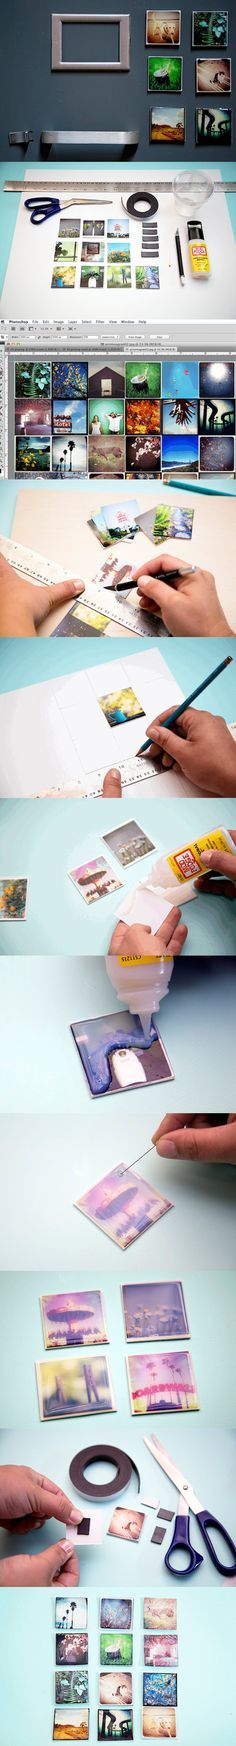 DIY Instagram magnets - these would make such a cute Mother's Day gift